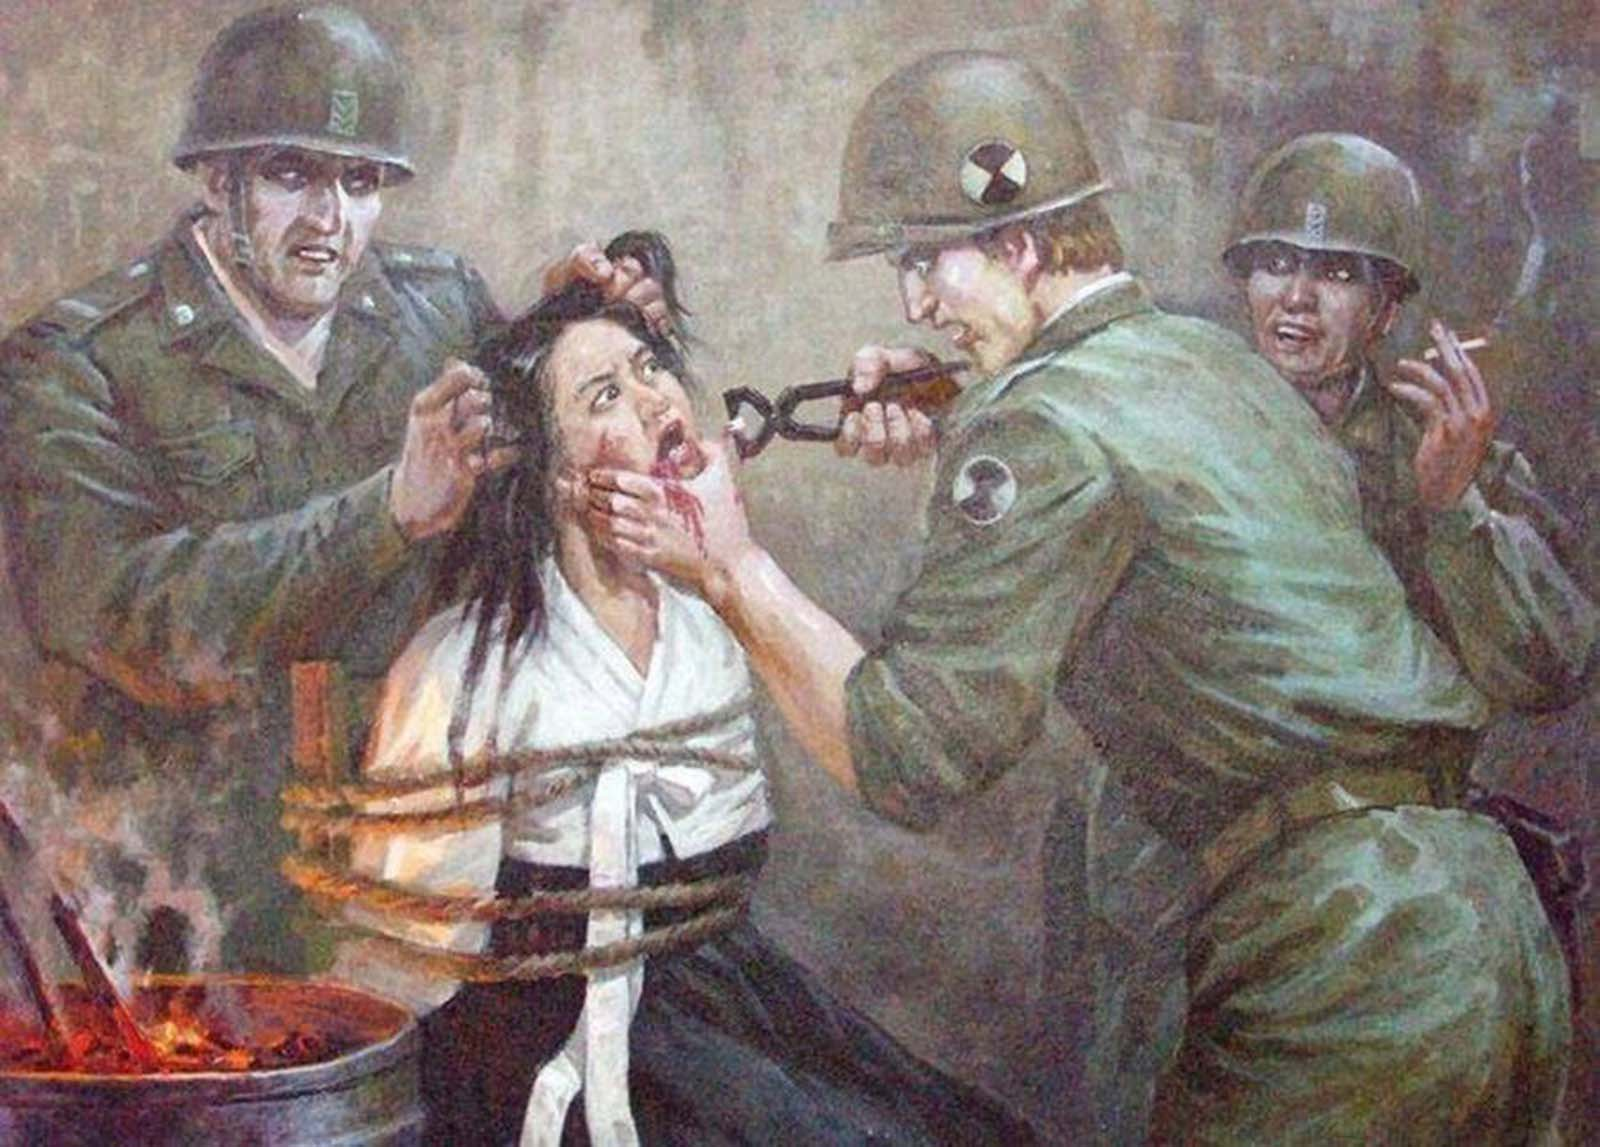 One soldier yanks the teeth from a Korean woman.